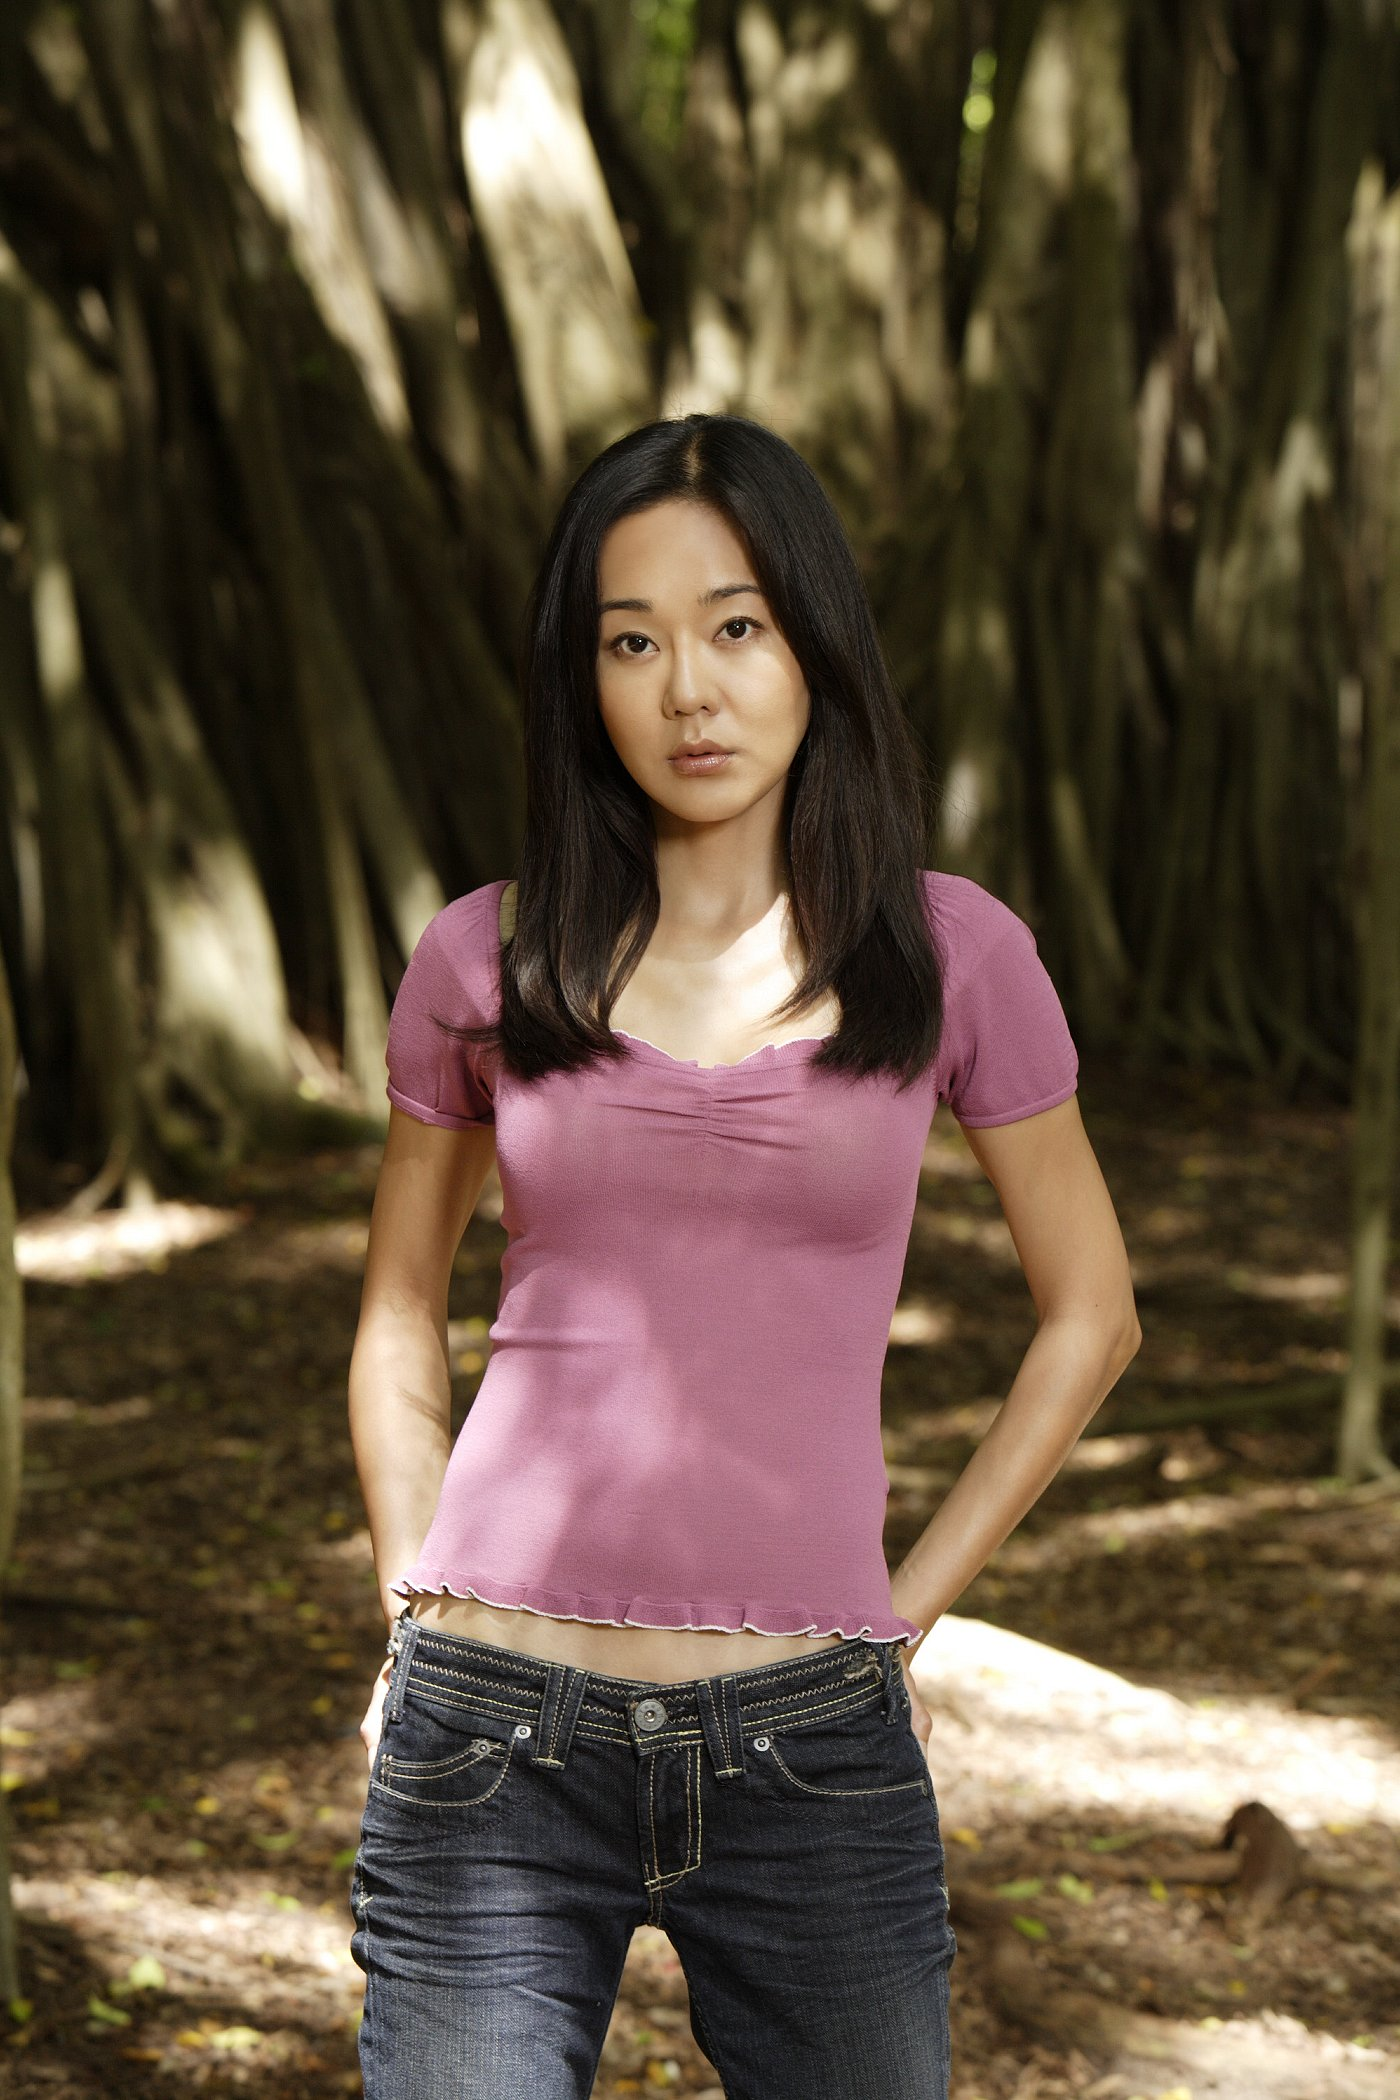 Yunjin Kim photo 24 of 25 pics, wallpaper - photo #362706 ... Yunjin Kim Husband Jeong Hyeok Park